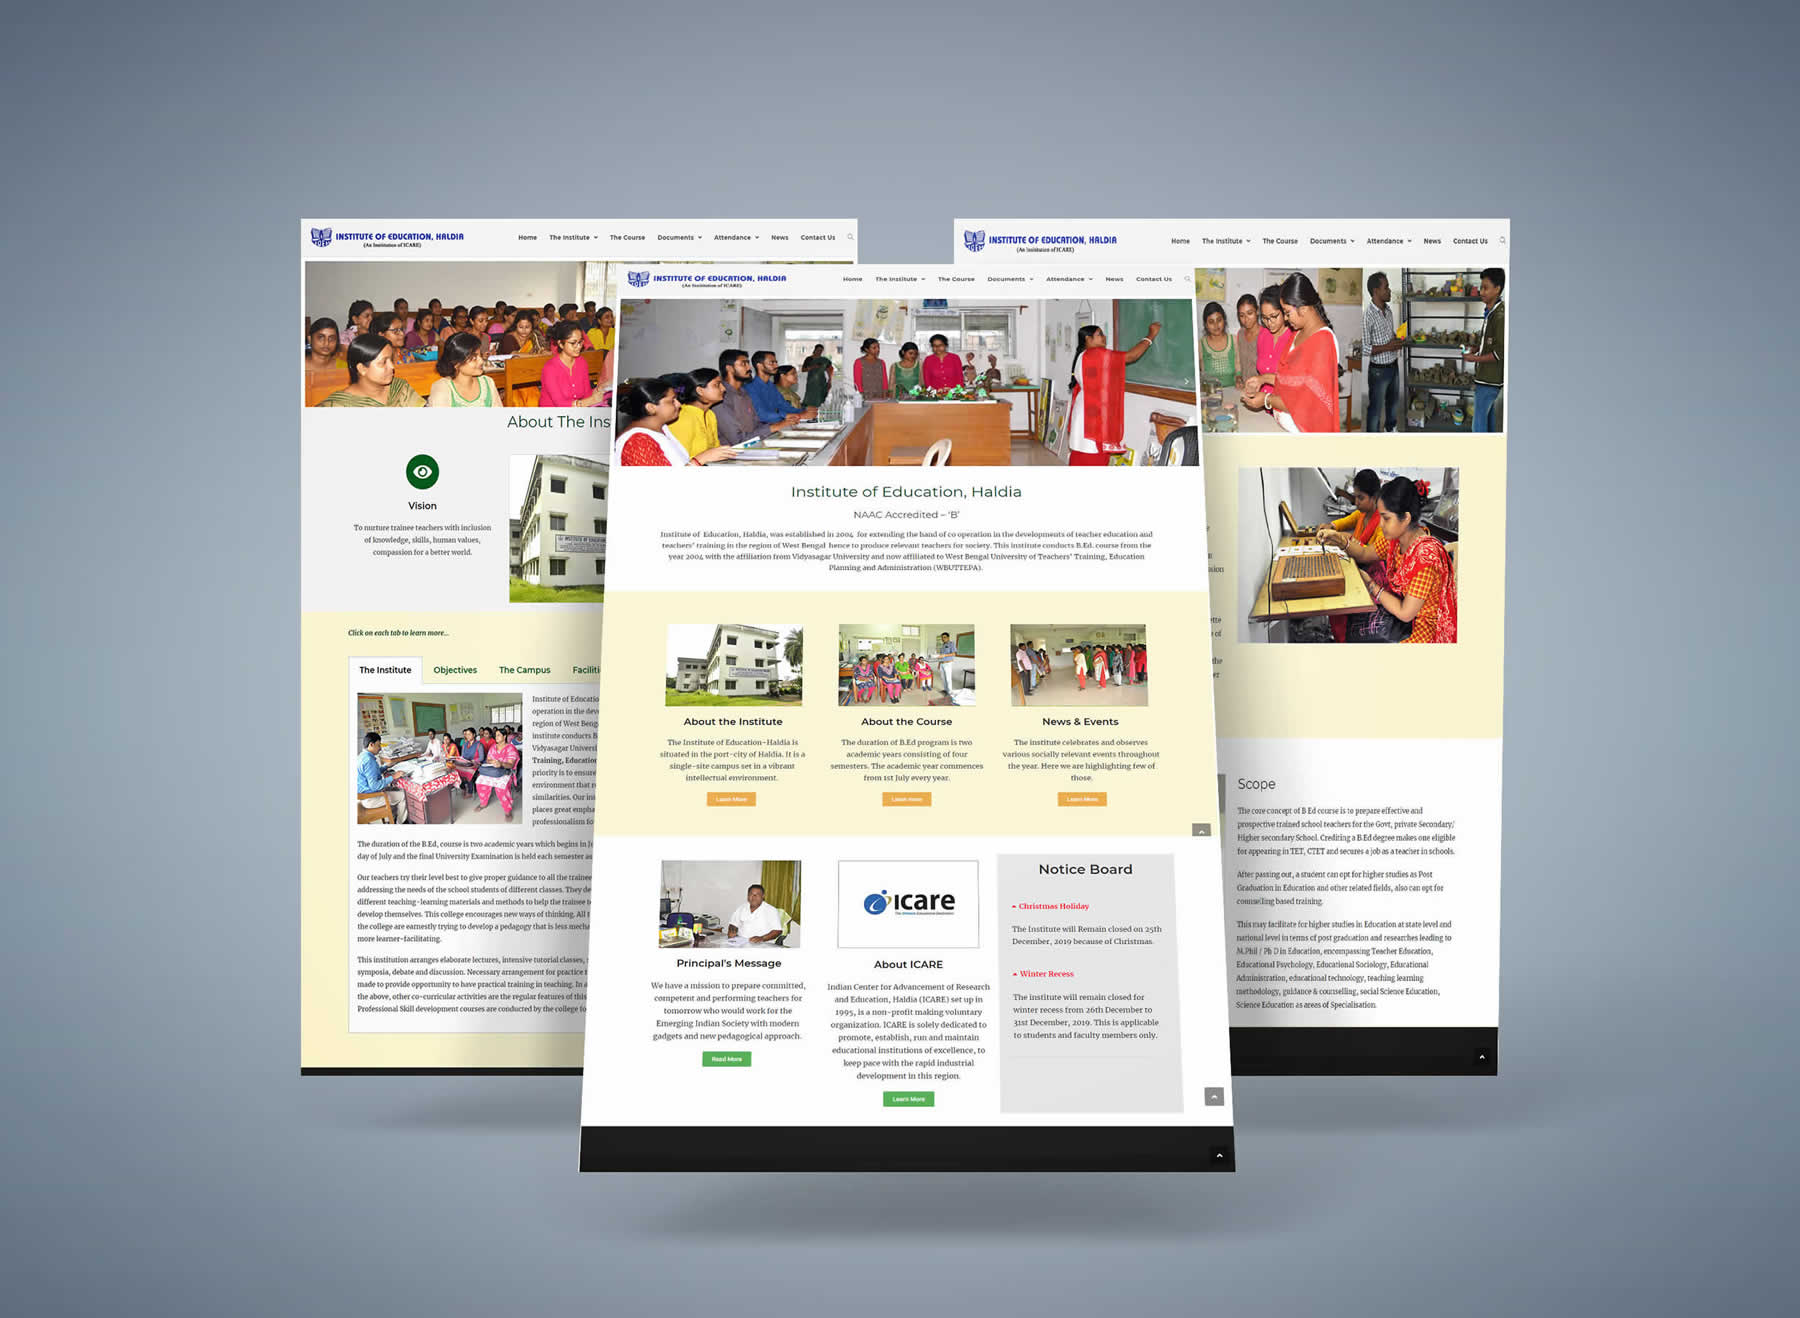 Institute of Education, Haldia website